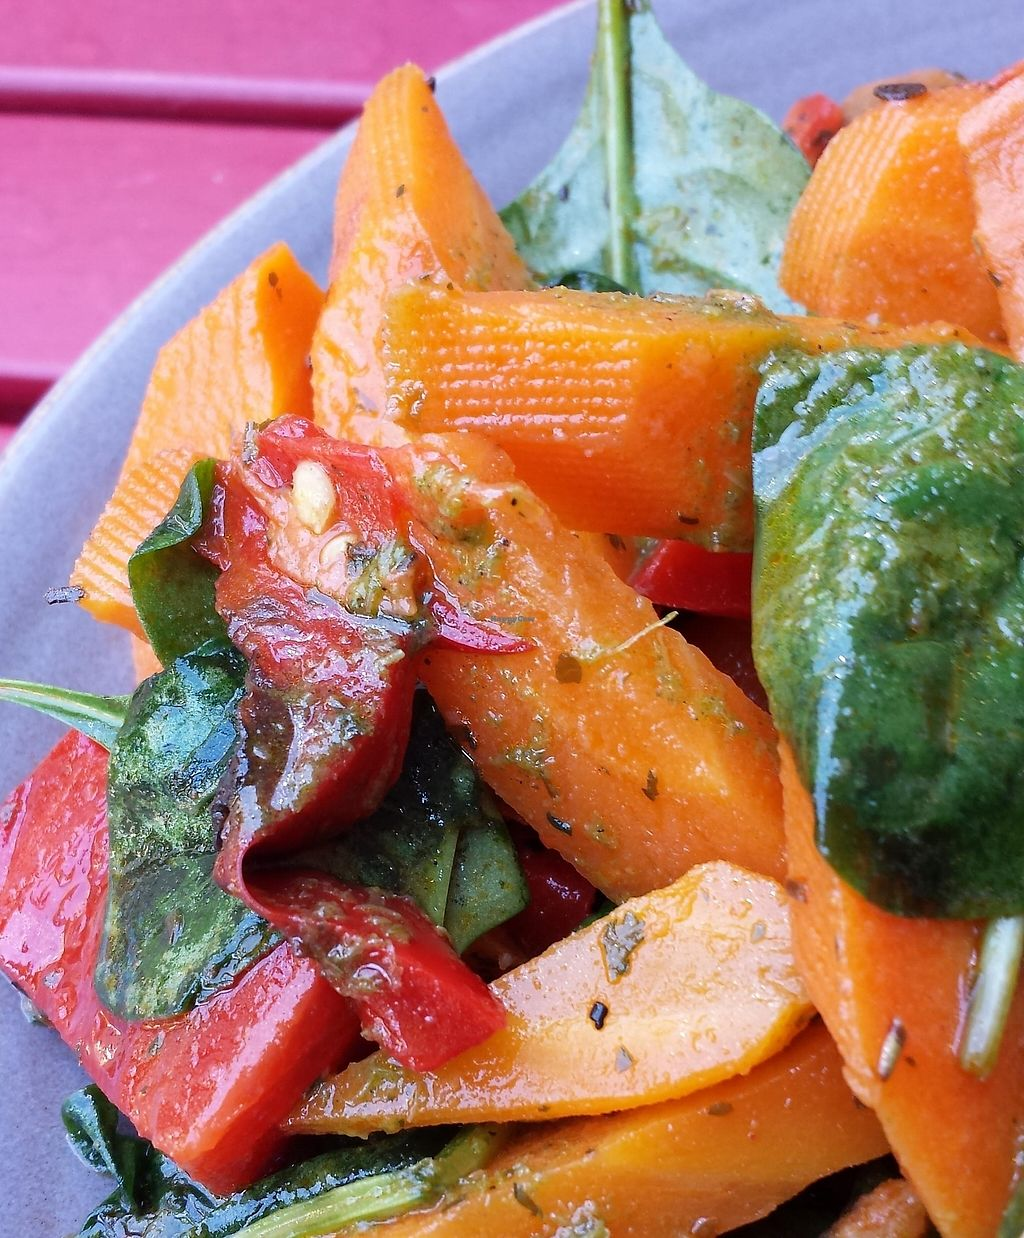 """Photo of Radhey Kitchen and Chai Bar  by <a href=""""/members/profile/Aloo"""">Aloo</a> <br/>Sweet potato salad with gorgeous mint dressing <br/> March 3, 2016  - <a href='/contact/abuse/image/48629/256515'>Report</a>"""